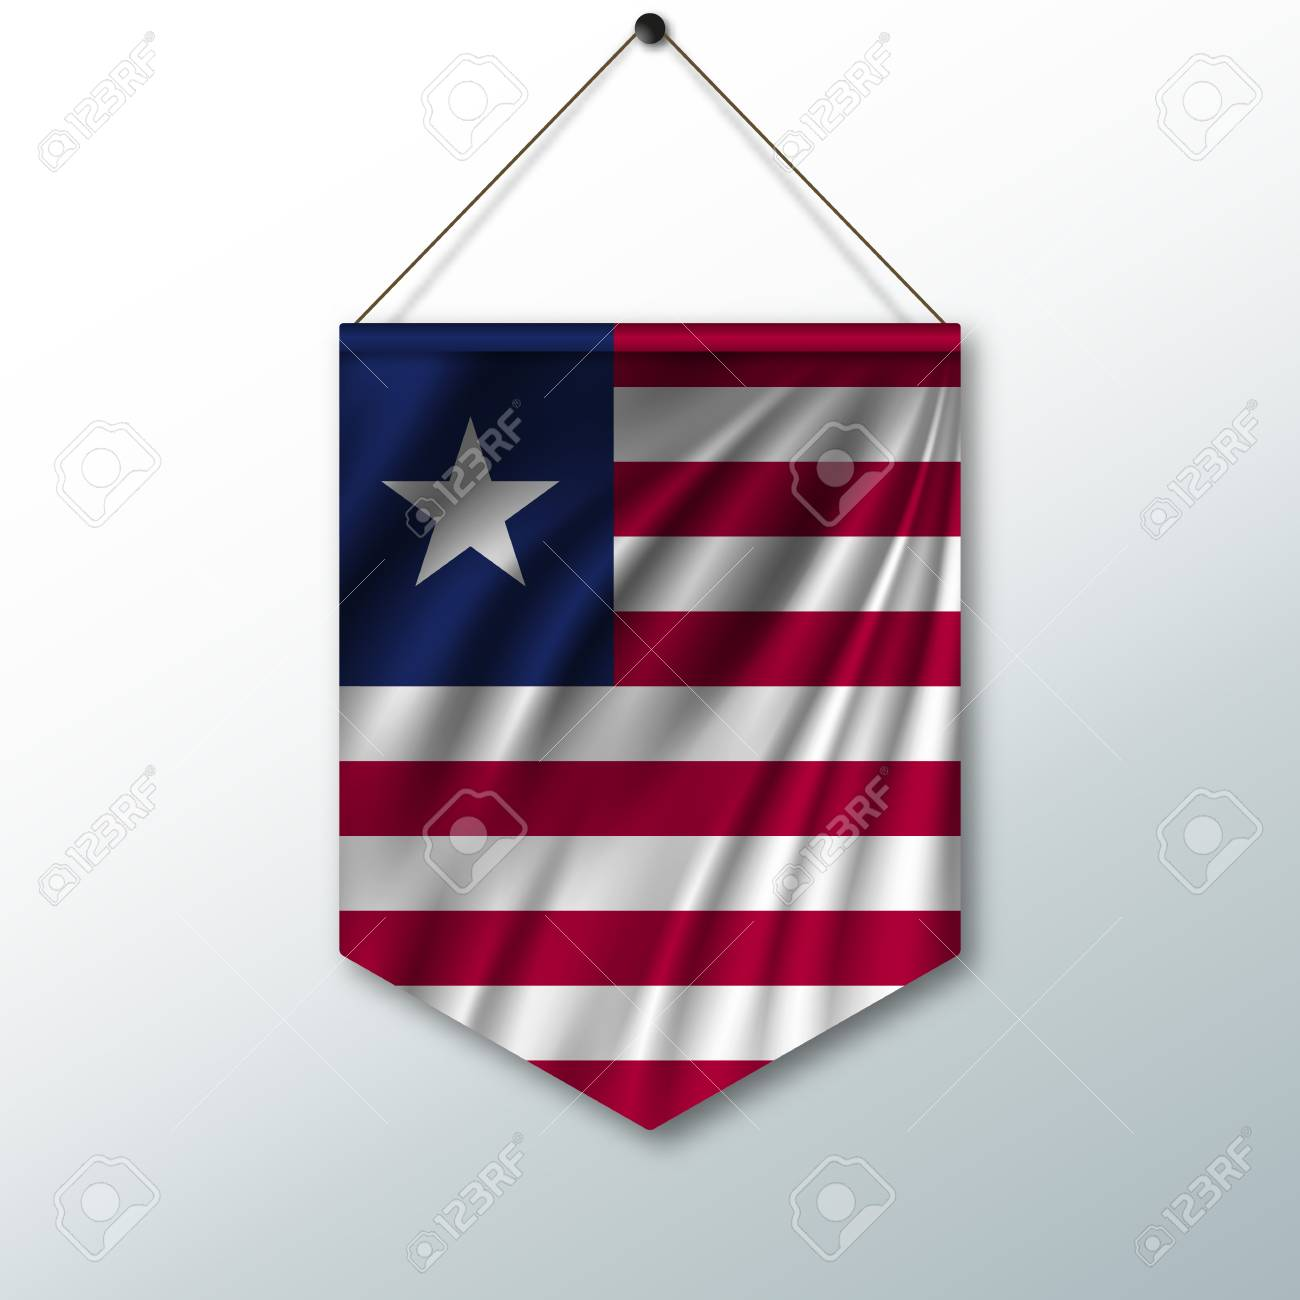 The National Flag Of Usa The Symbol Of The State In The Pennant